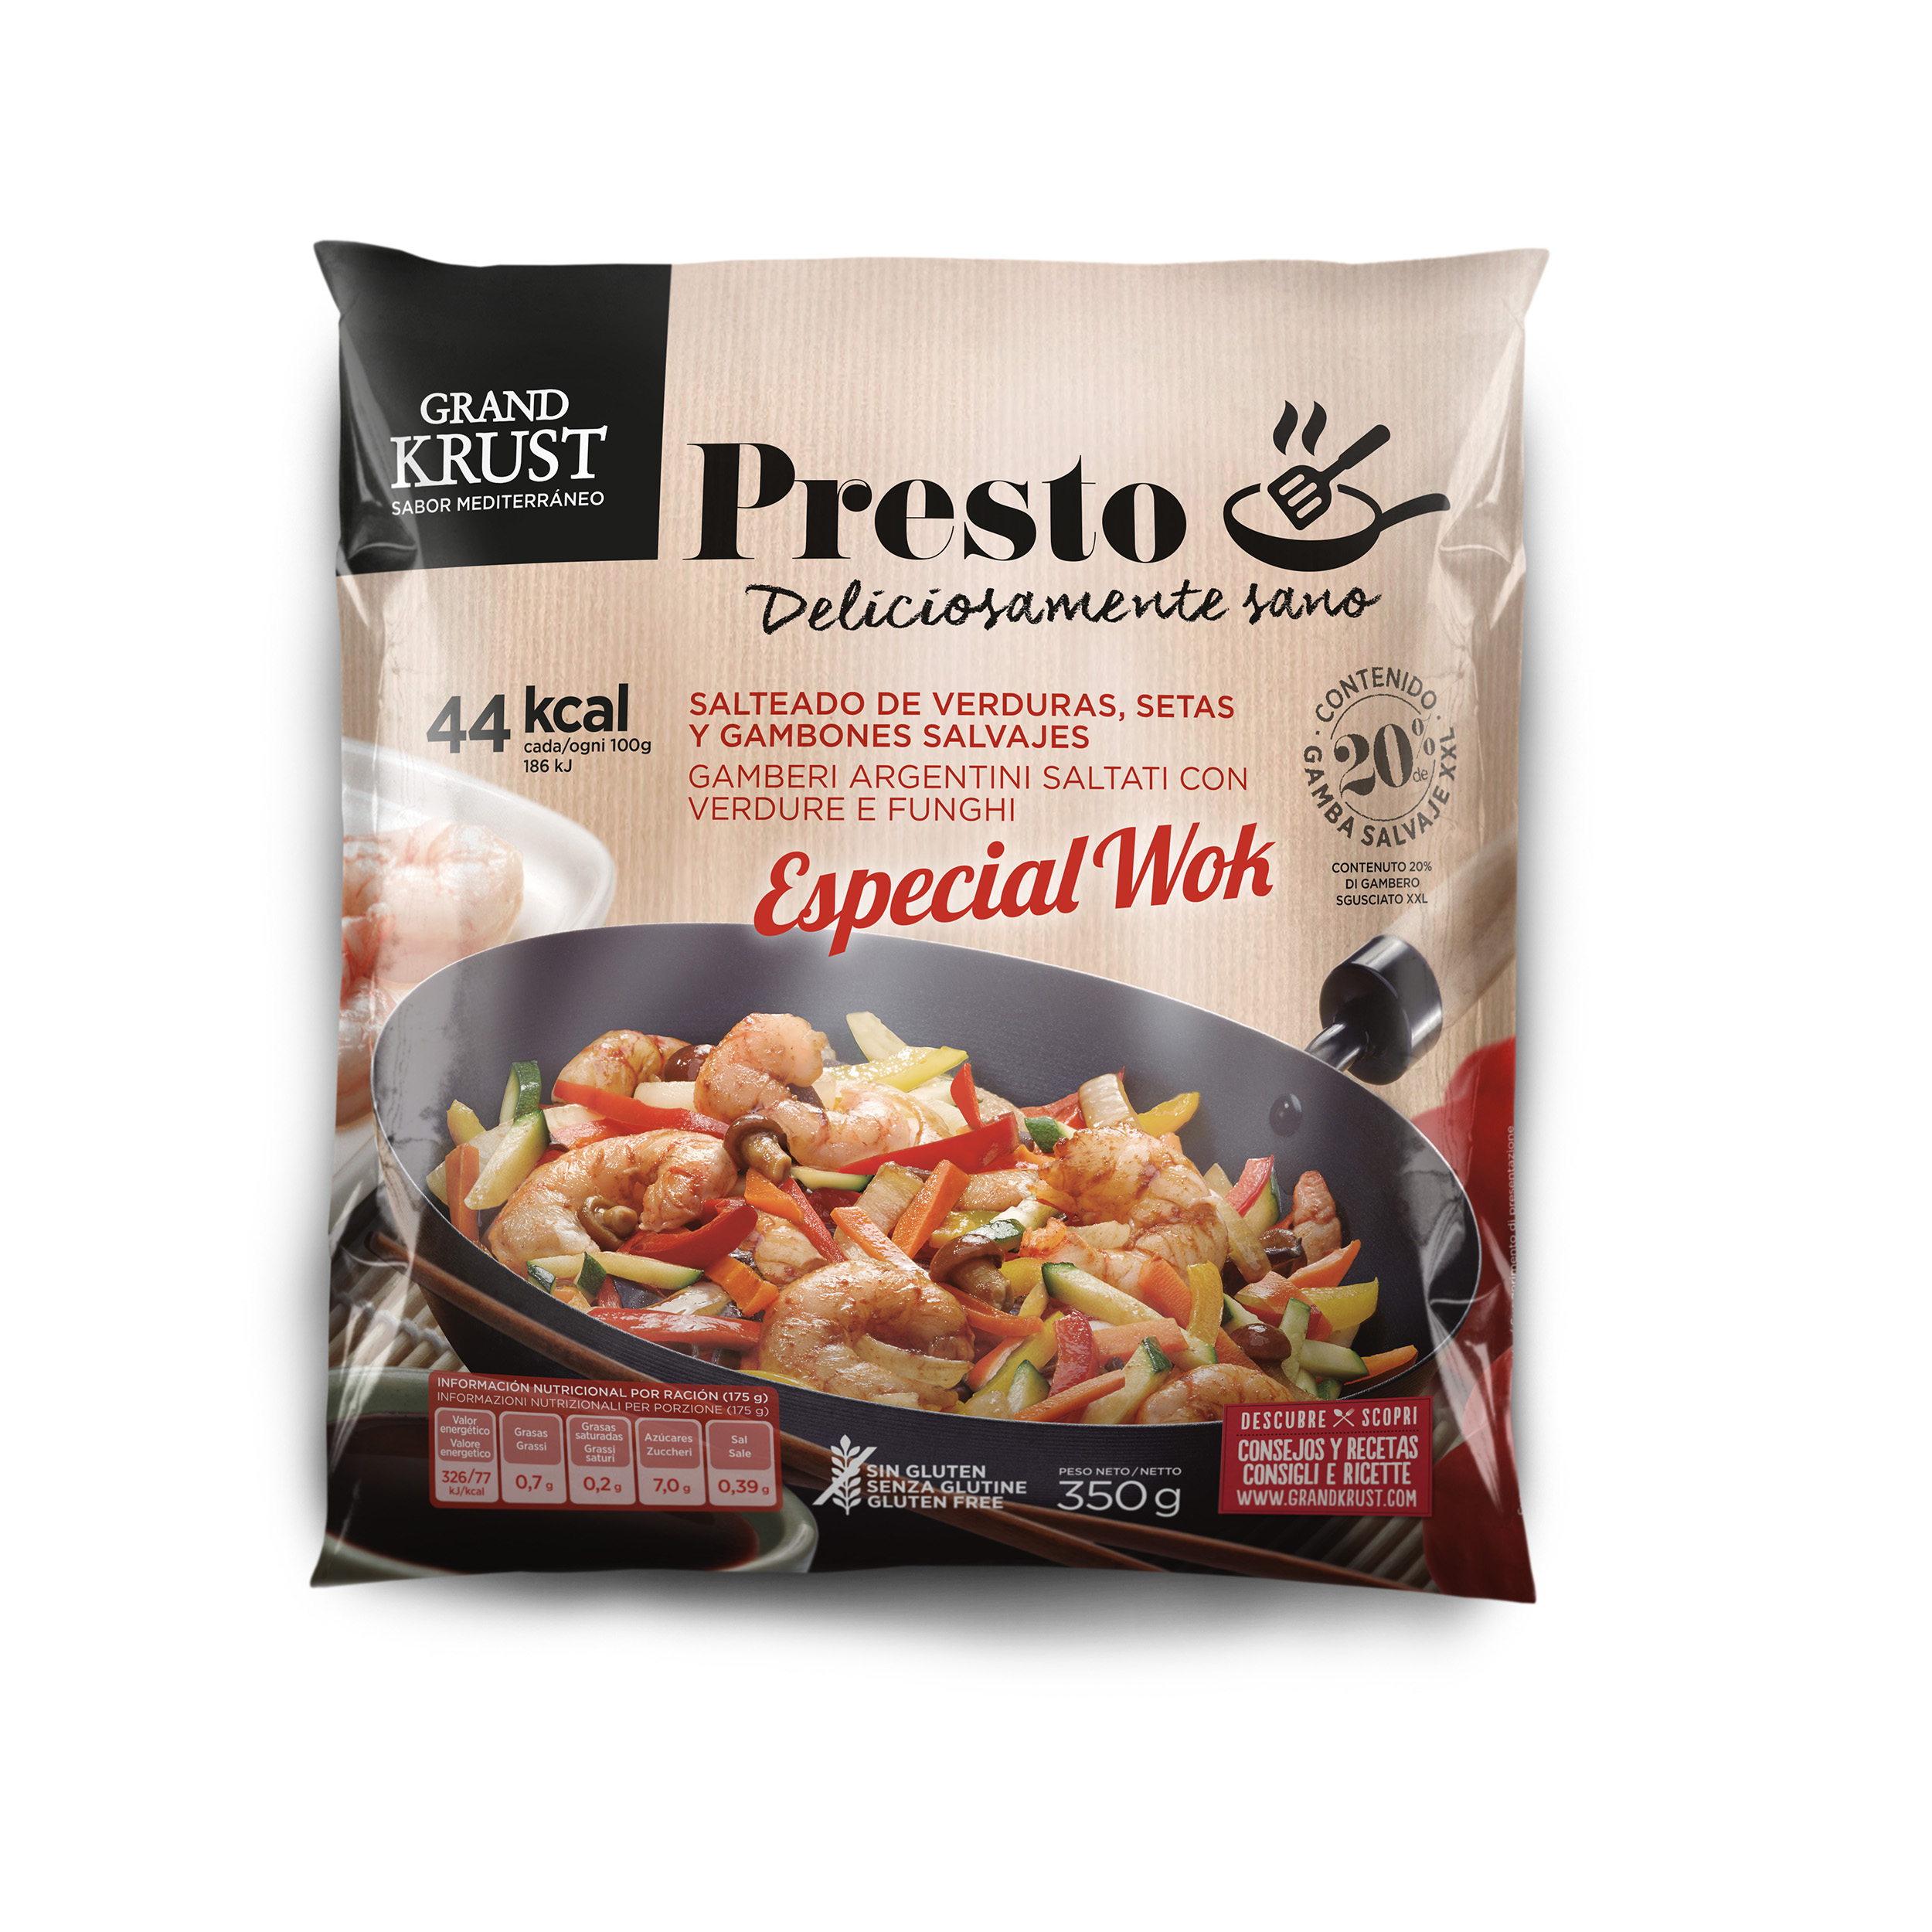 Grand Krust Presto shrimp wok Image